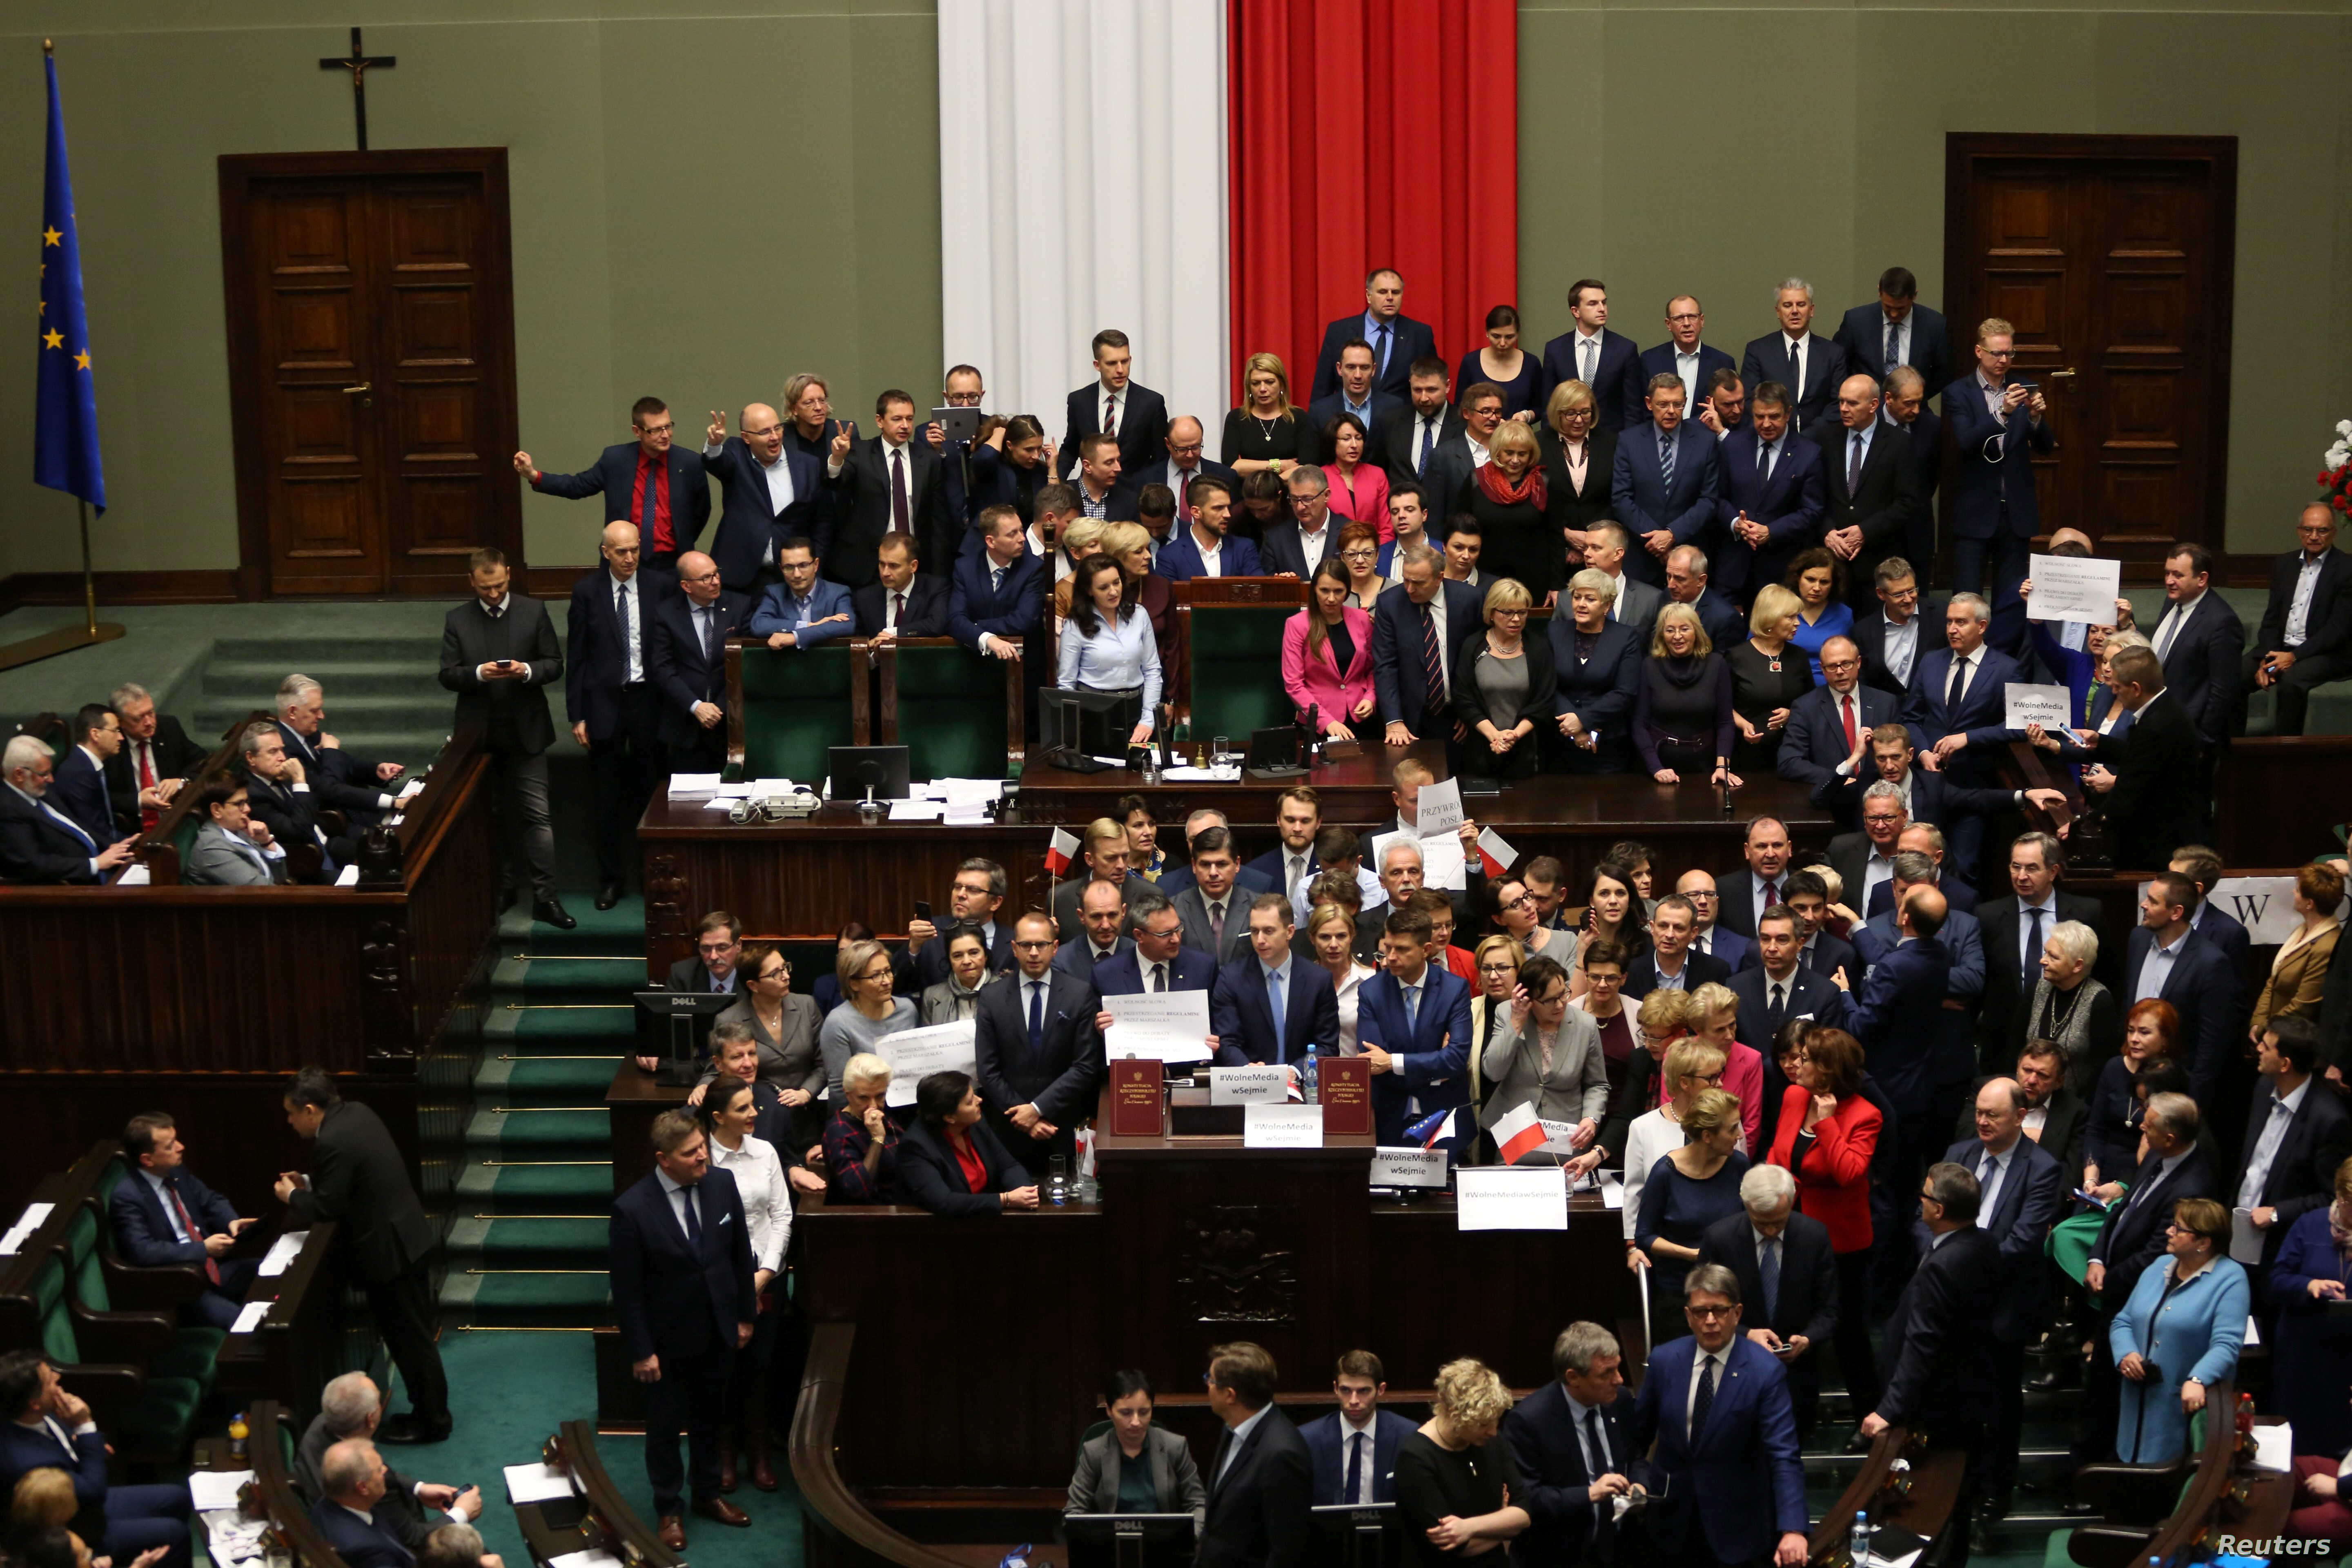 Polish opposition parliamentarians protest against the rules proposed by the head office of the lower house of parliament that would ban all recording of parliamentary sessions except by five selected television stations and limits the number of jour...